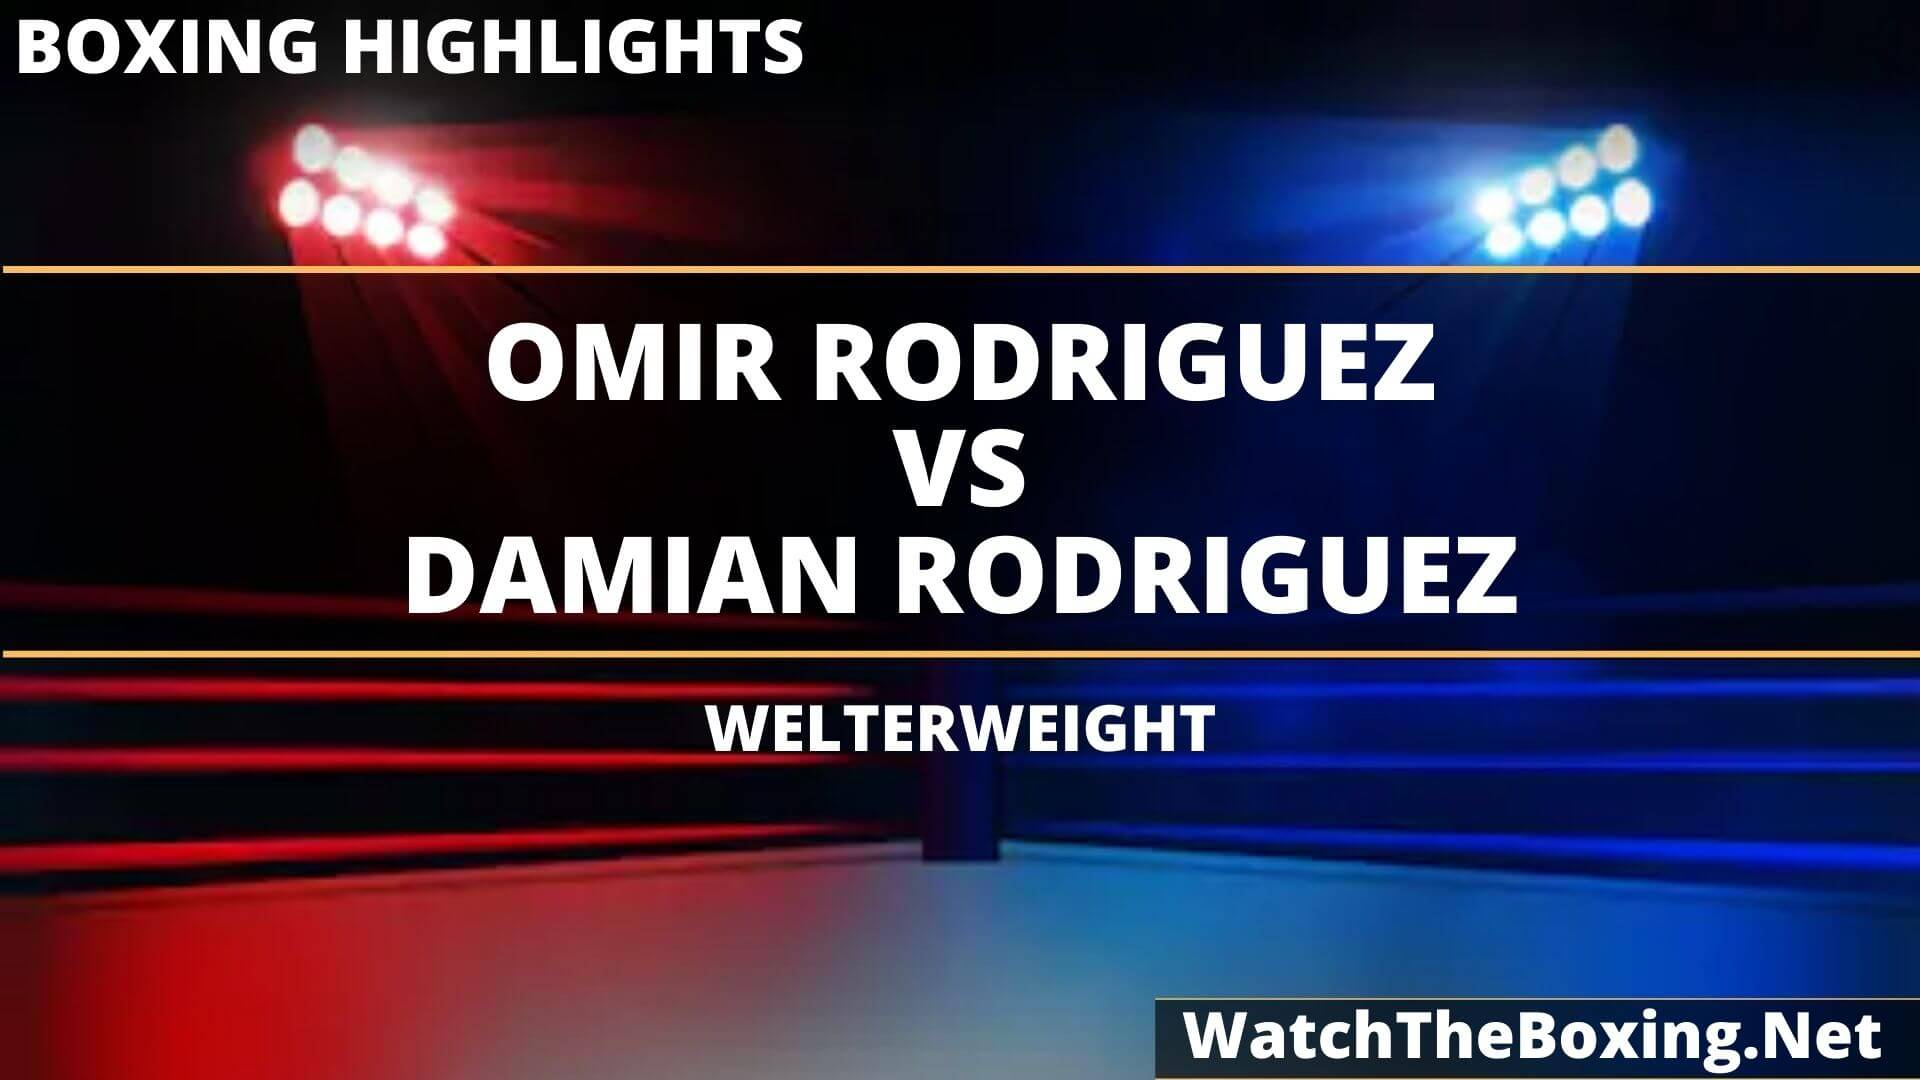 Omir Rodriguez Vs Damian Rodriguez Highlights 2020